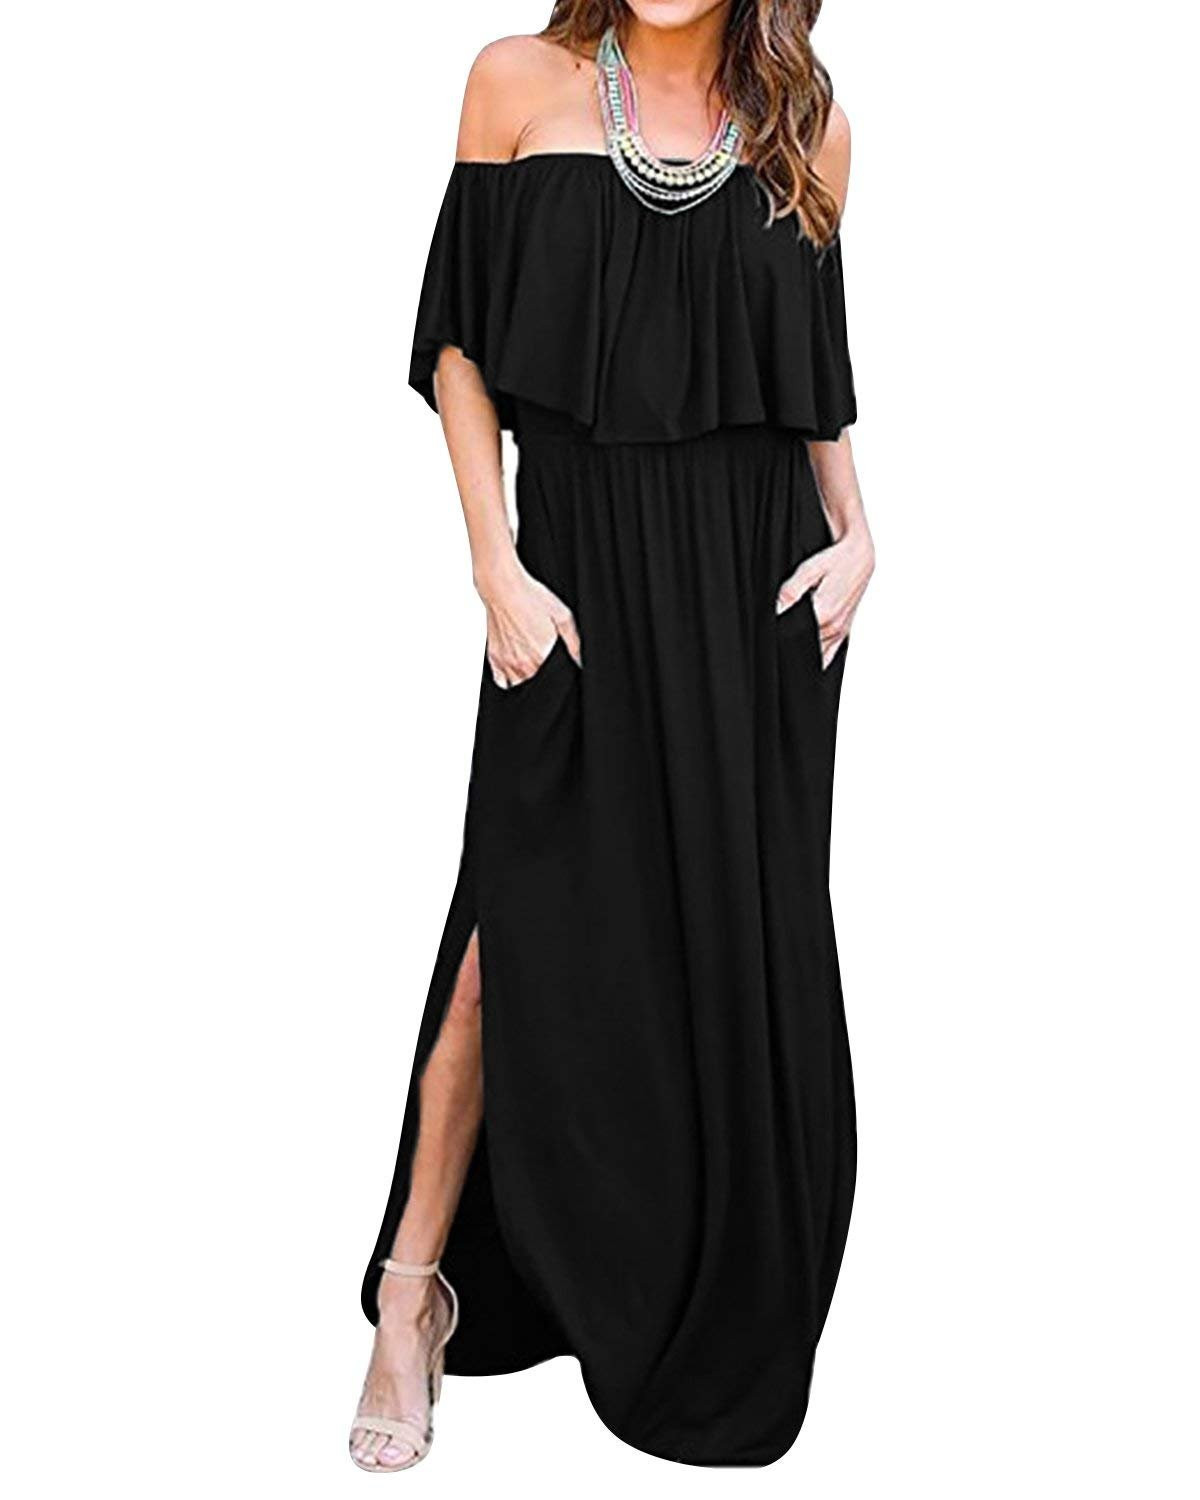 LILBETTER Womens Off The Shoulder Ruffles Pockets Dress Side Split Maxi Dresses (Black L)